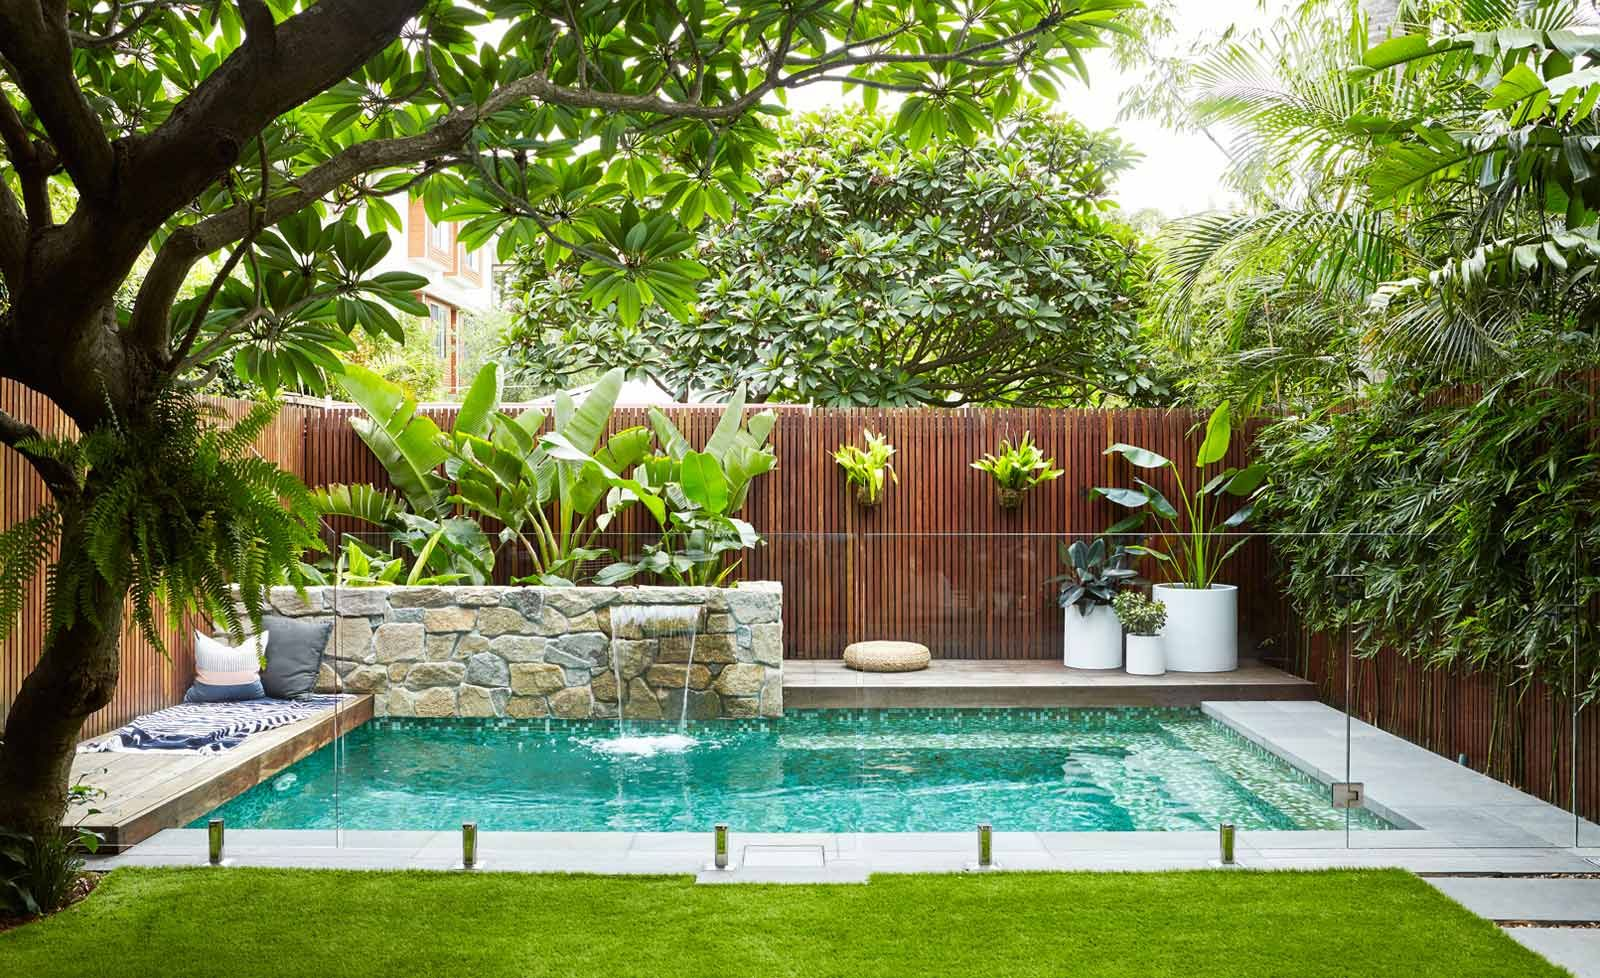 Swimming pool garden  Image result for plunge pool landscaping | swimming pools ...